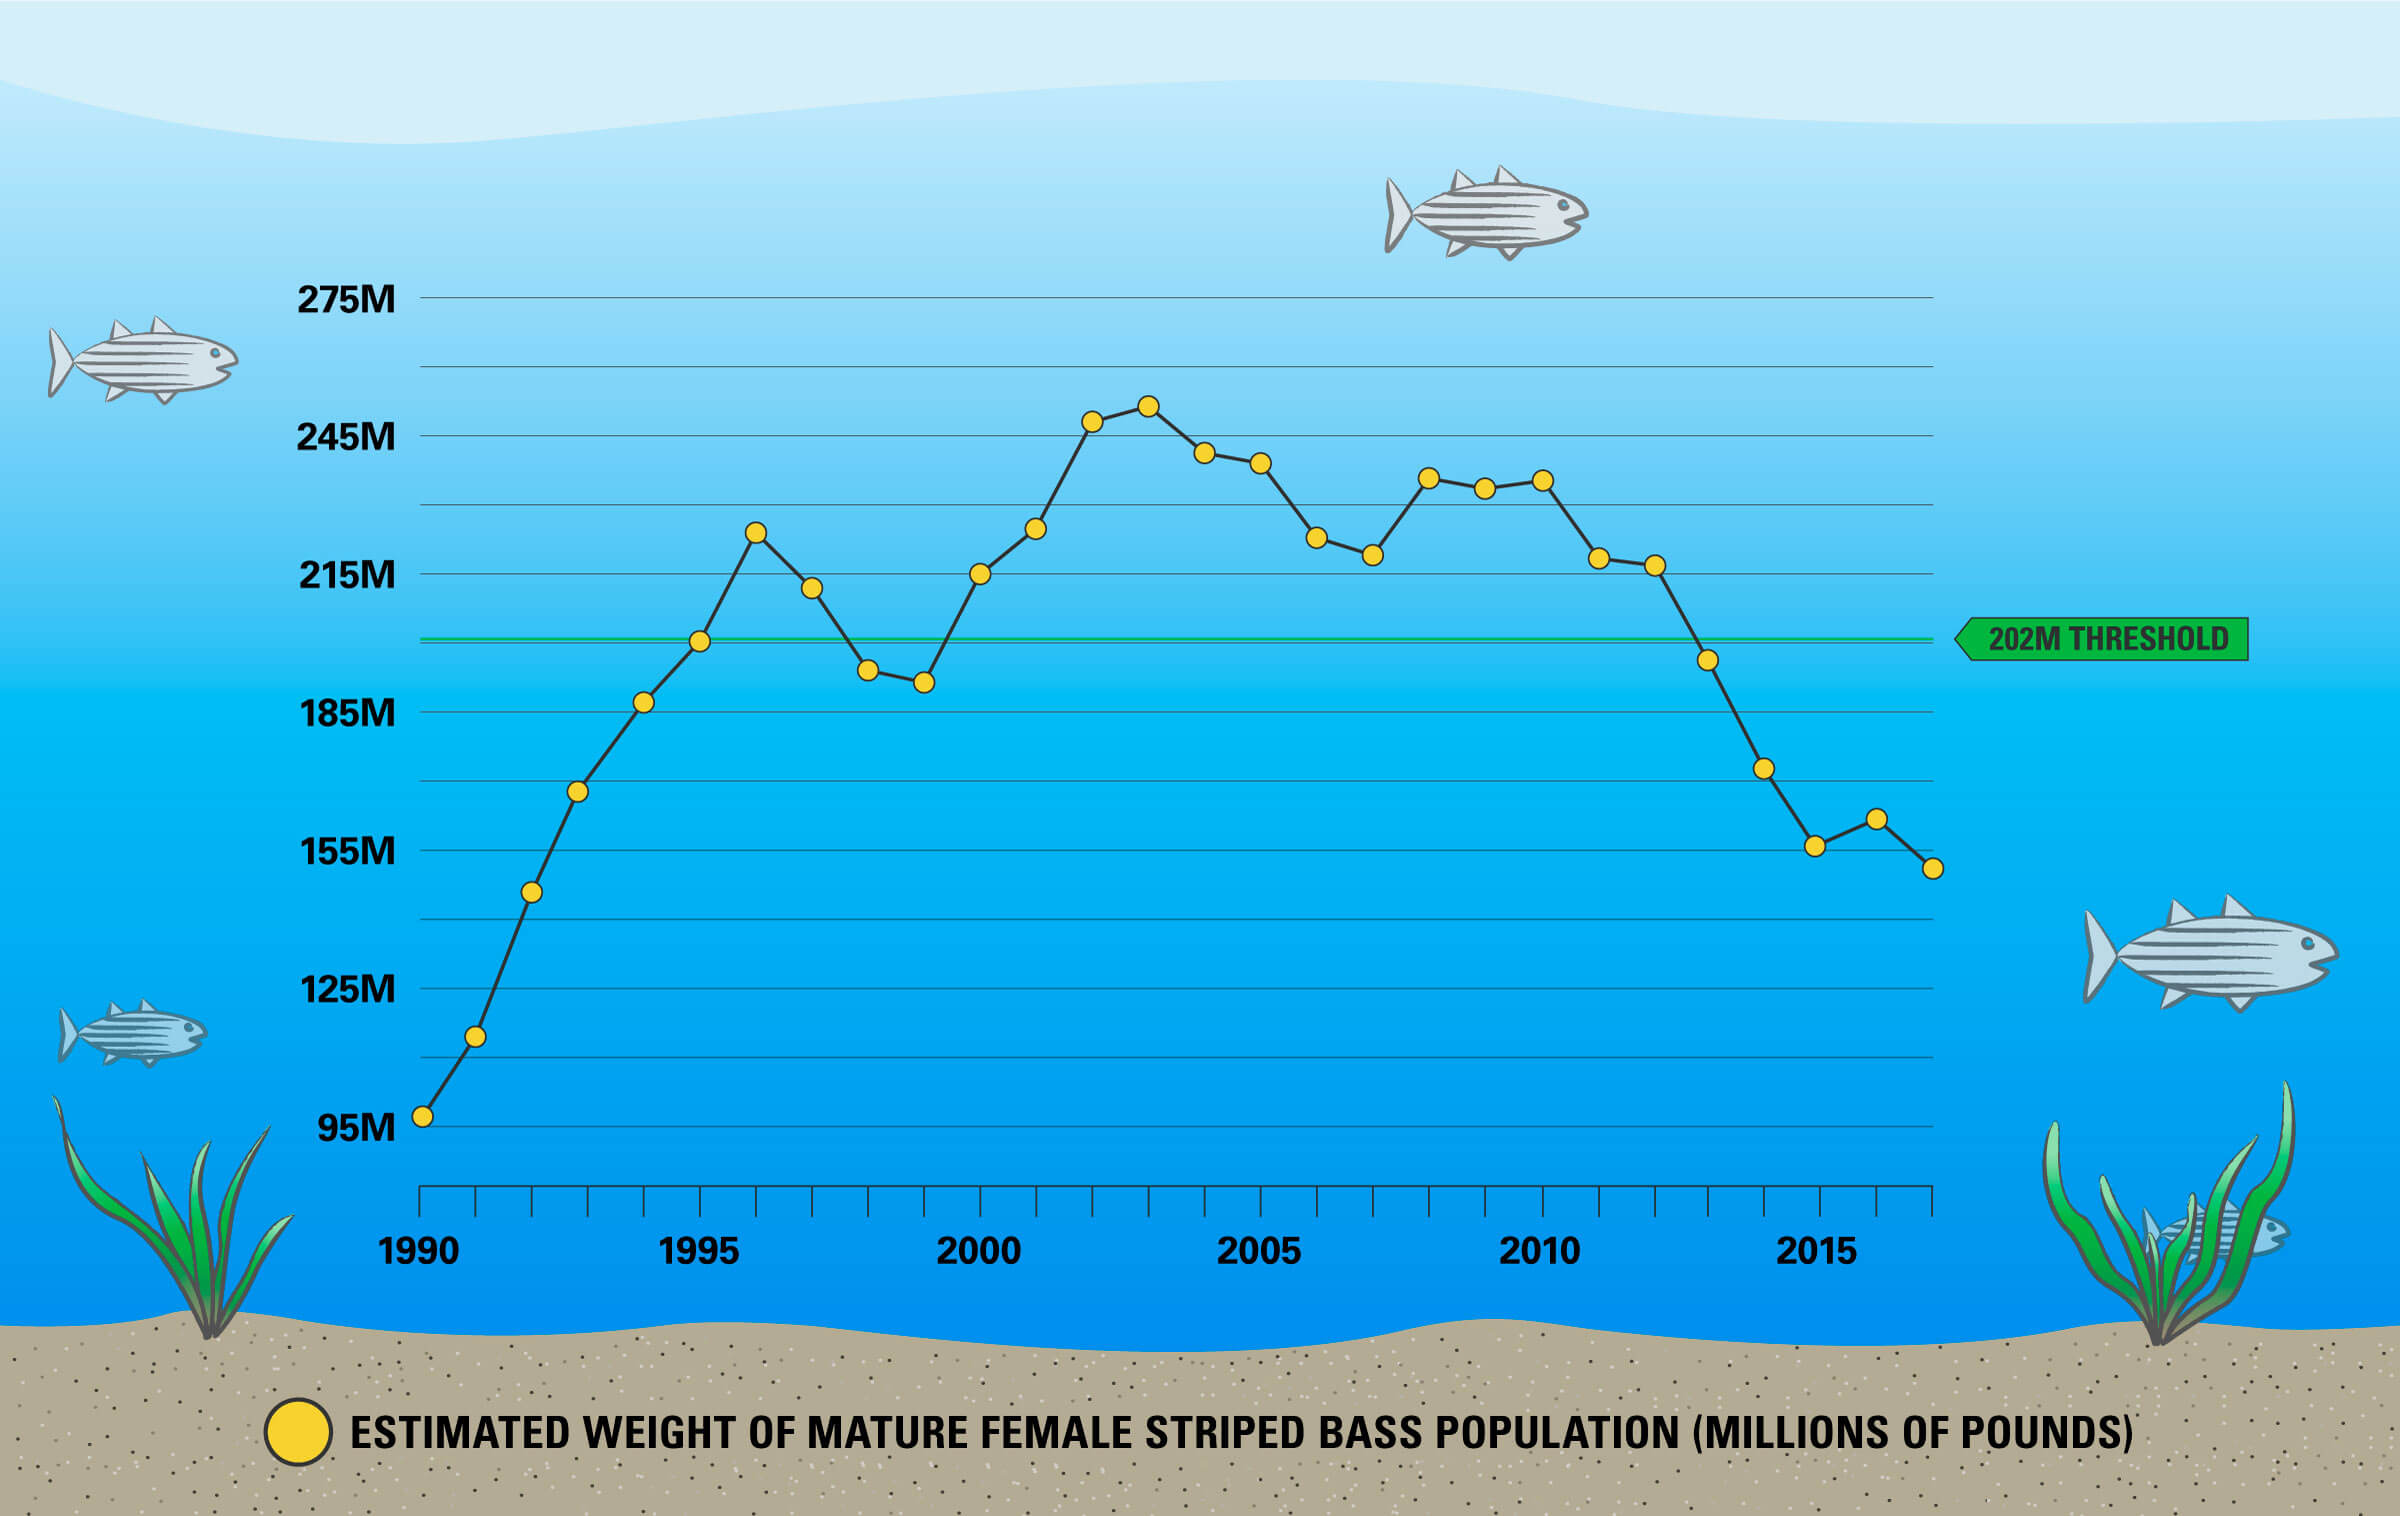 Line graph illustrating the estimated weight of the mature female striped bass population from 1990 to 2018.